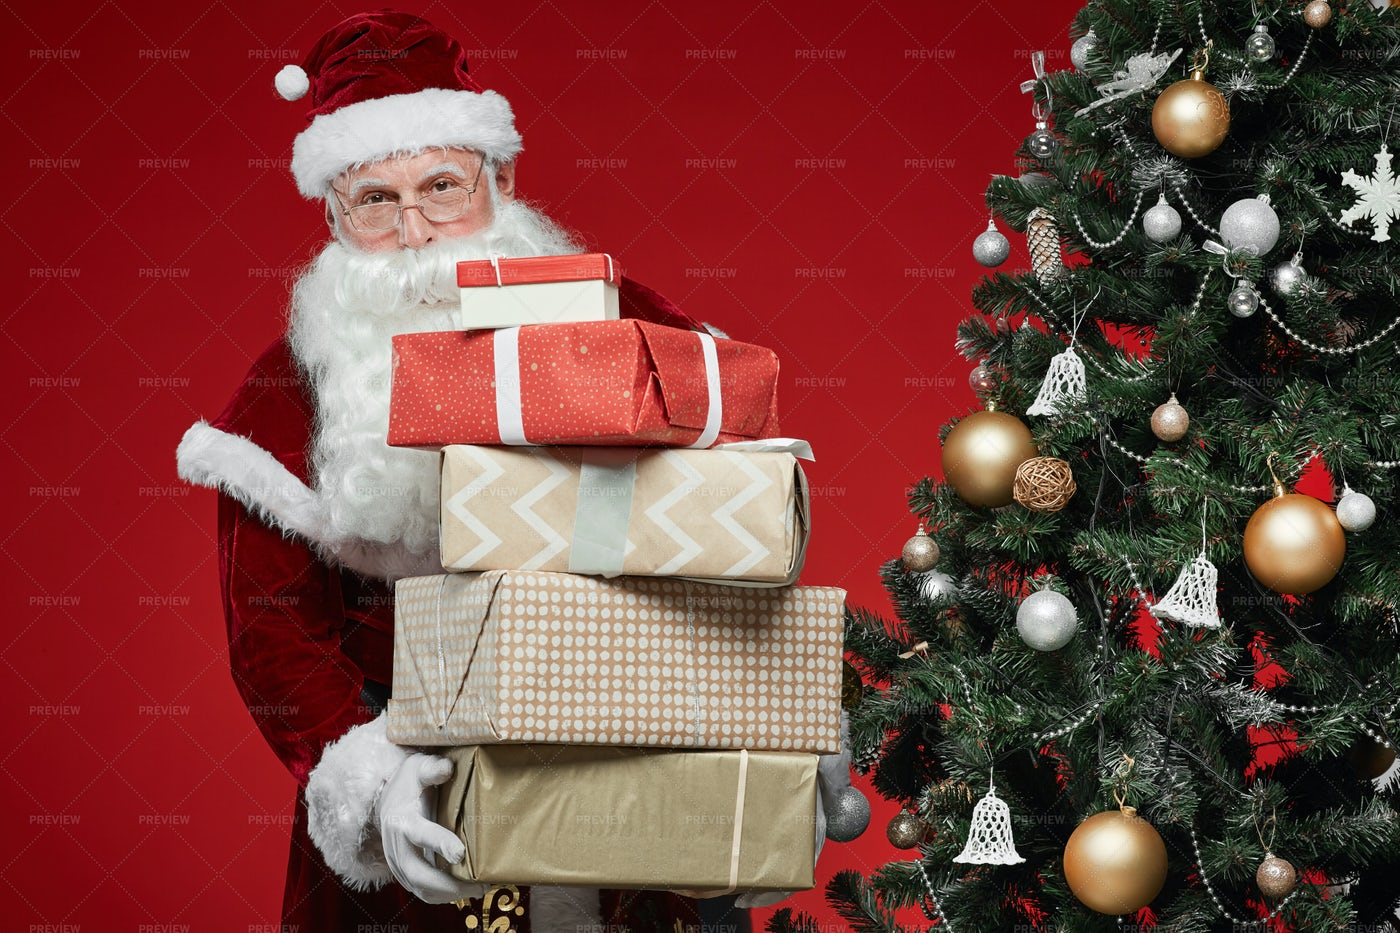 Santa Claus With Gifts: Stock Photos